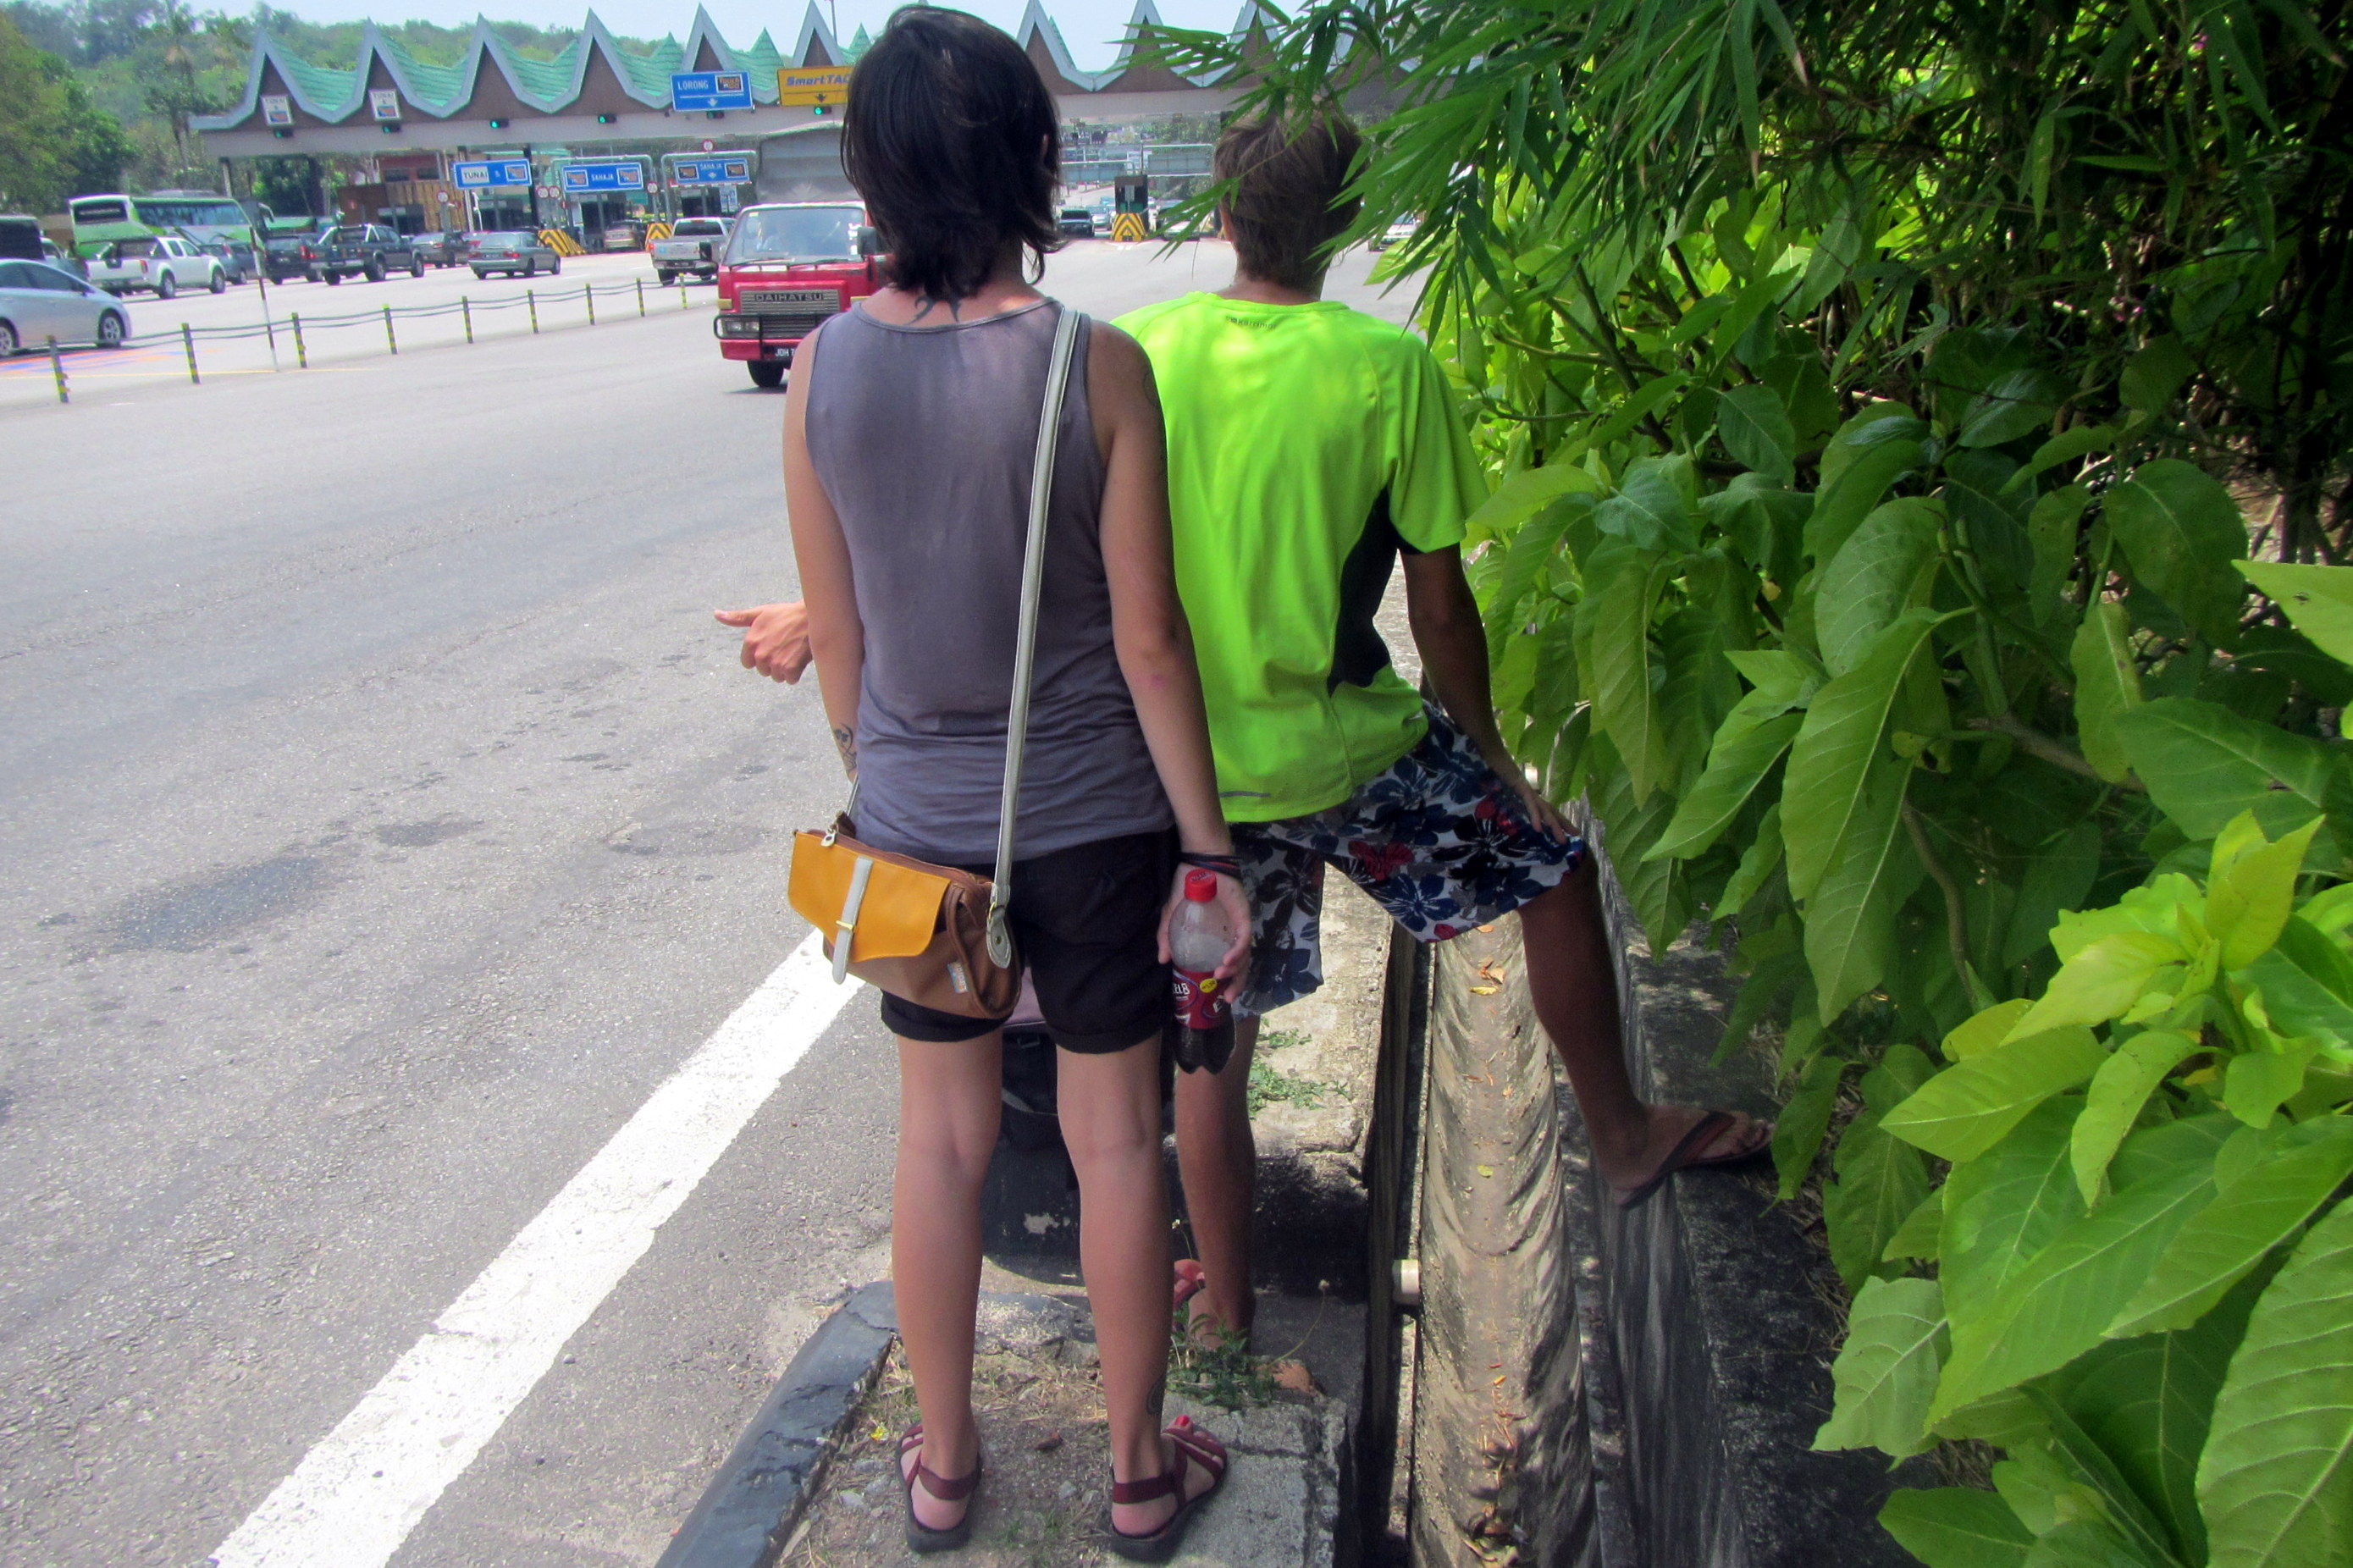 Una and Viesturs hitchhiking - Hitchhiking in Malaysia